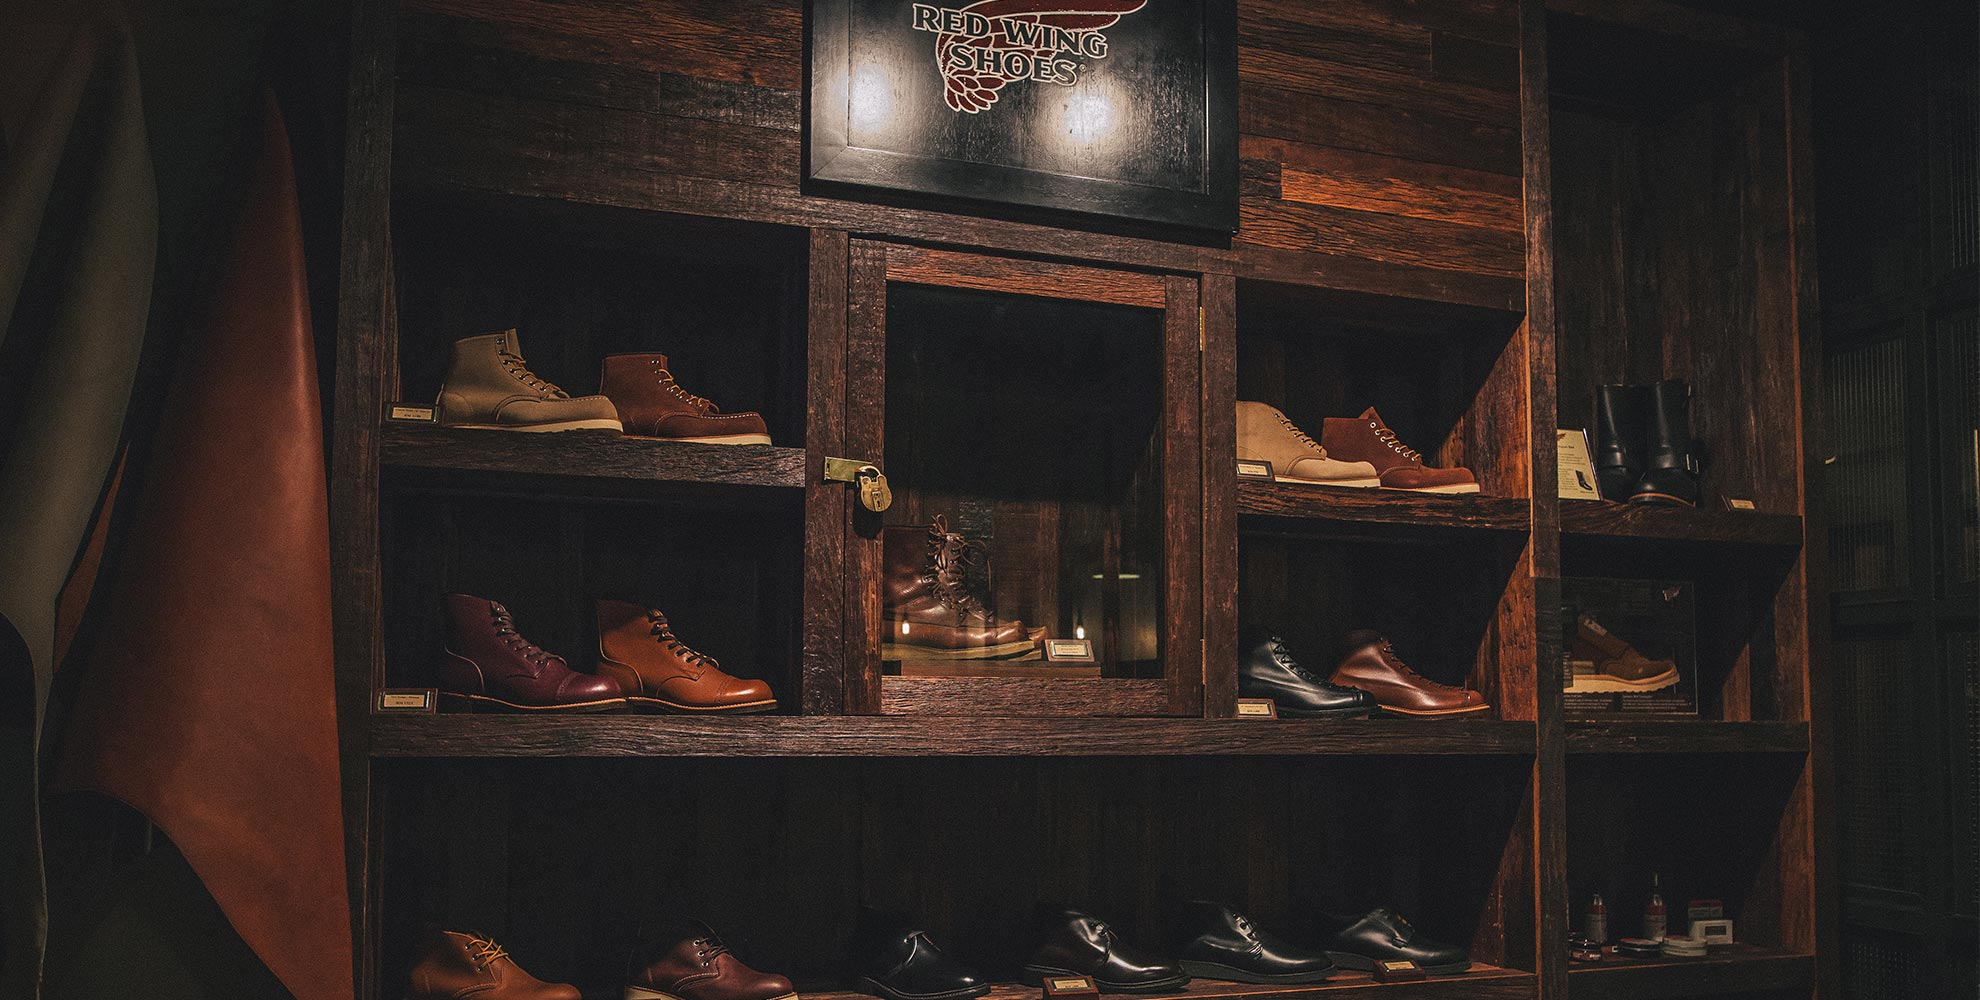 PAST, PRESENT, FUTURE : RED WING